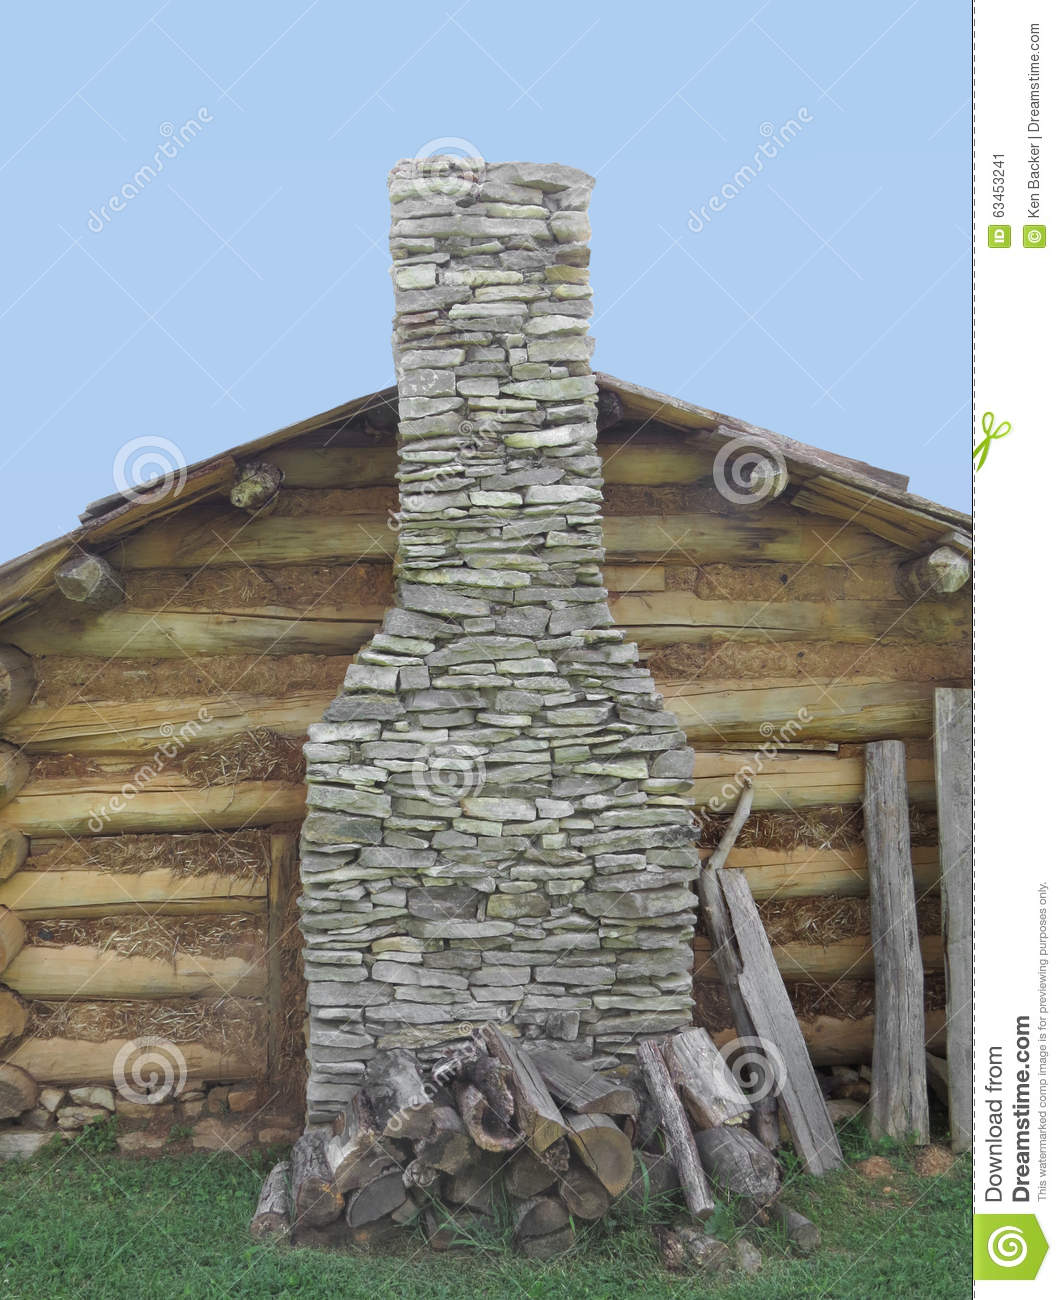 Stone chimney on wall of log cabin stock image image for Stone chimneys